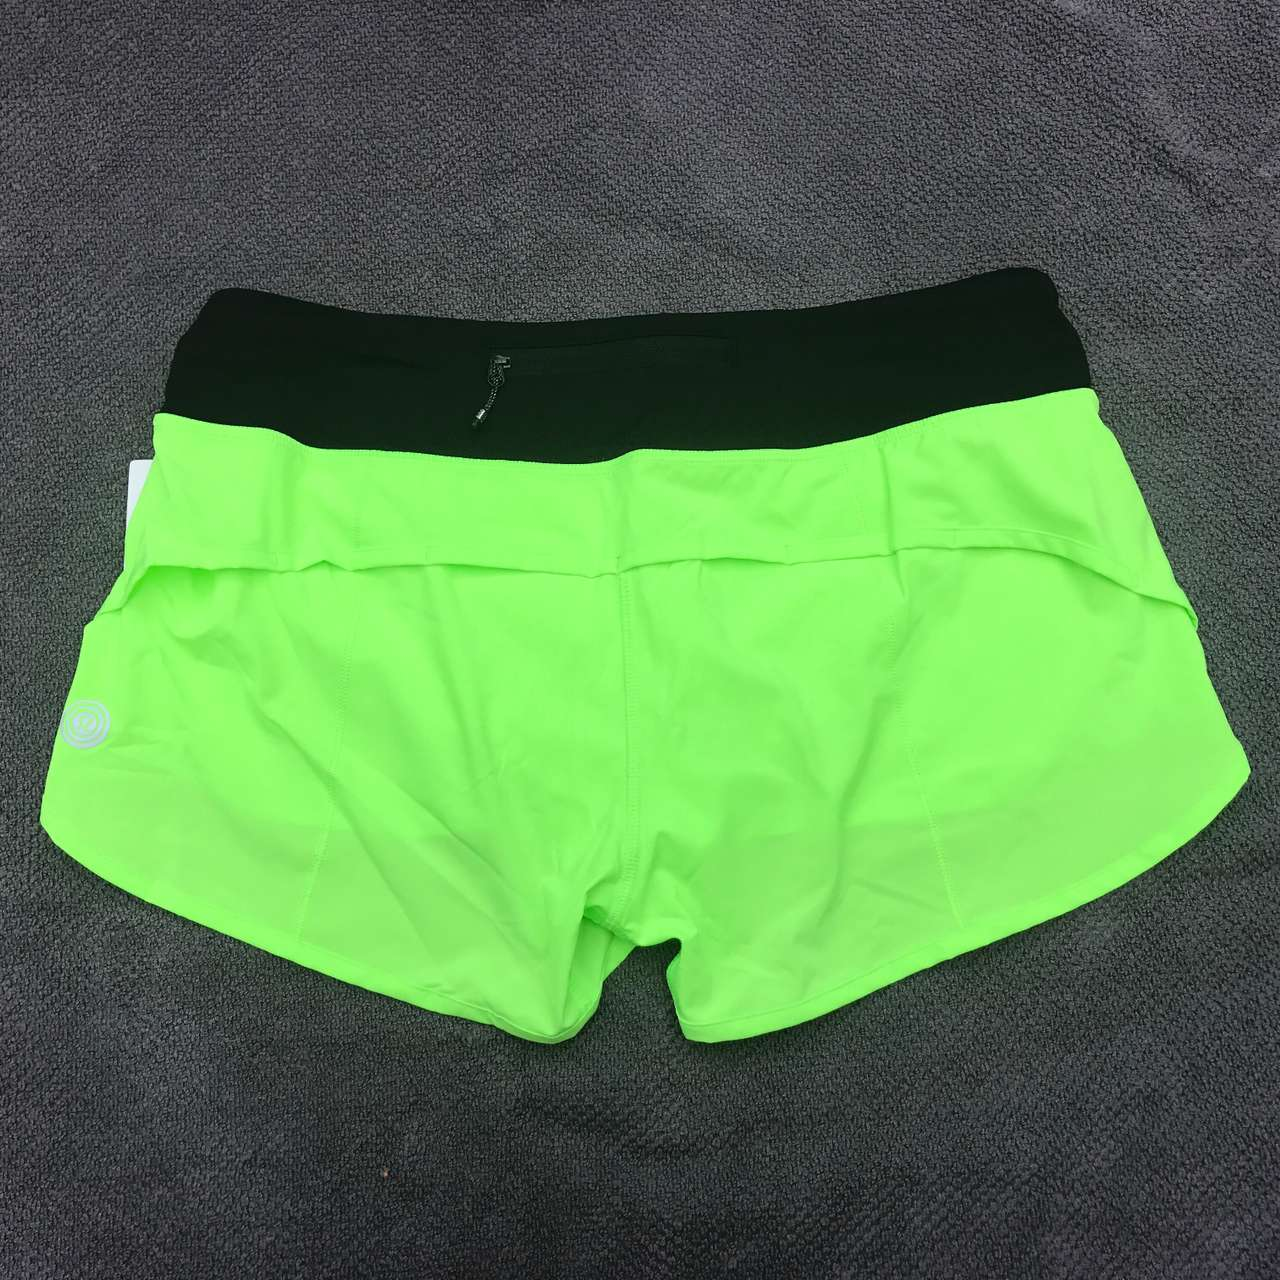 Lululemon Speed Short *SW - 2017 Seawheeze - Zippy Green / Black